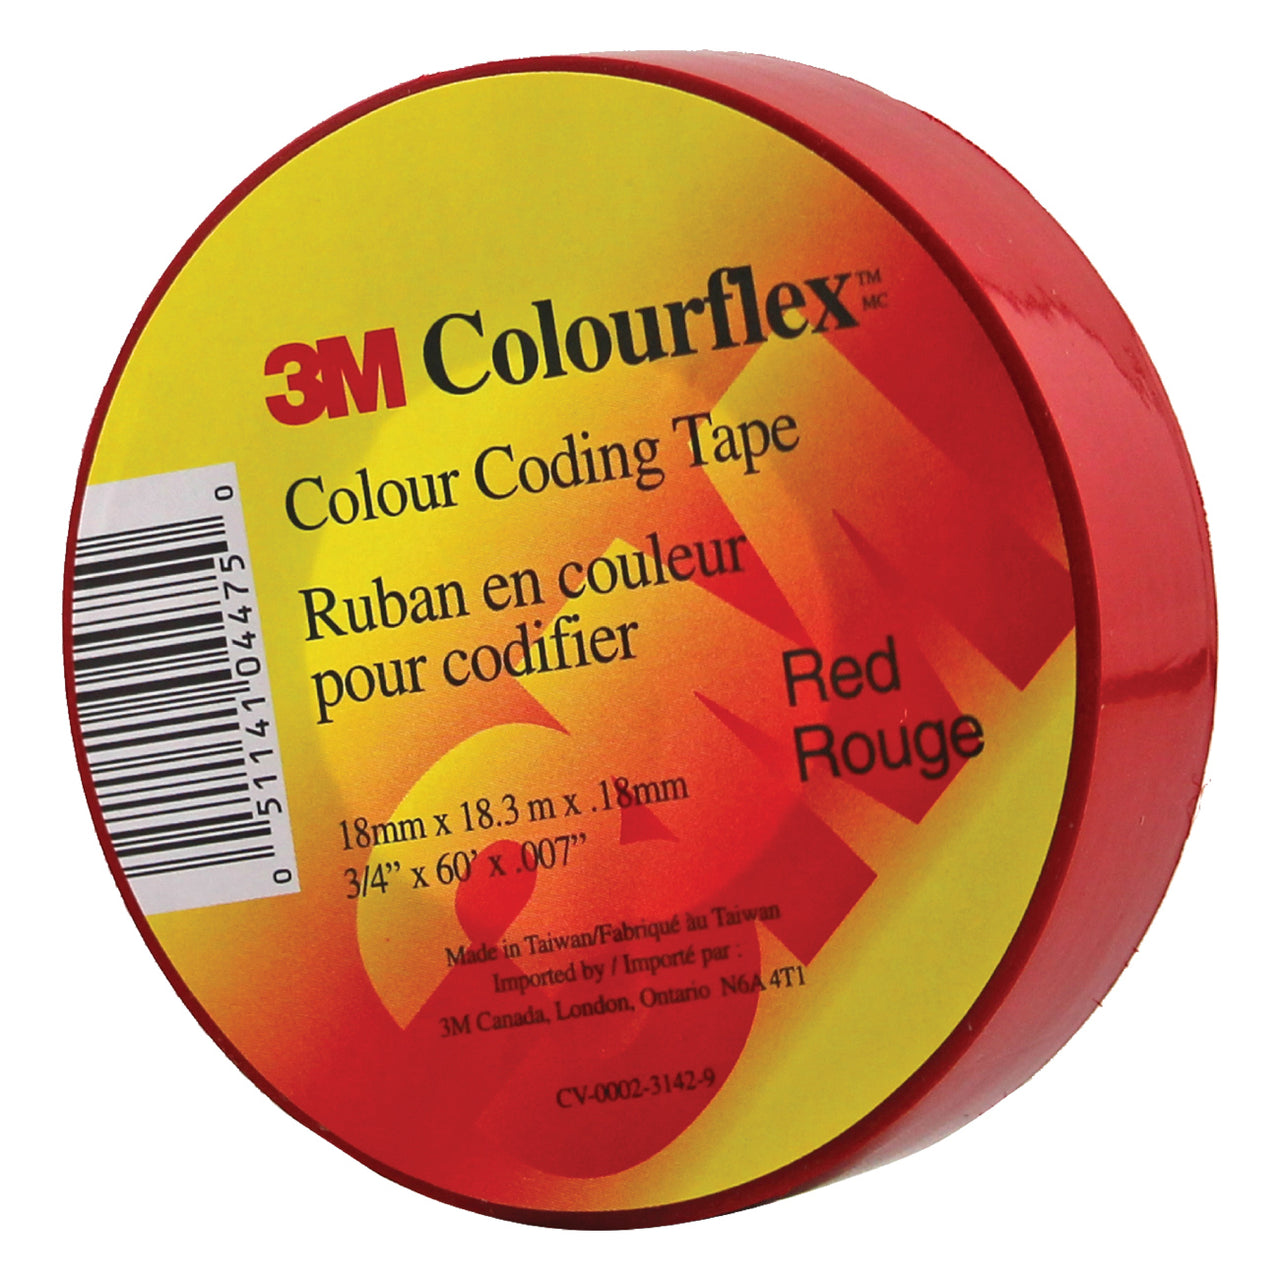 3M Colourflex Coding Tape 3/4X60 (Red) - Wound Dressing 3M - Canada